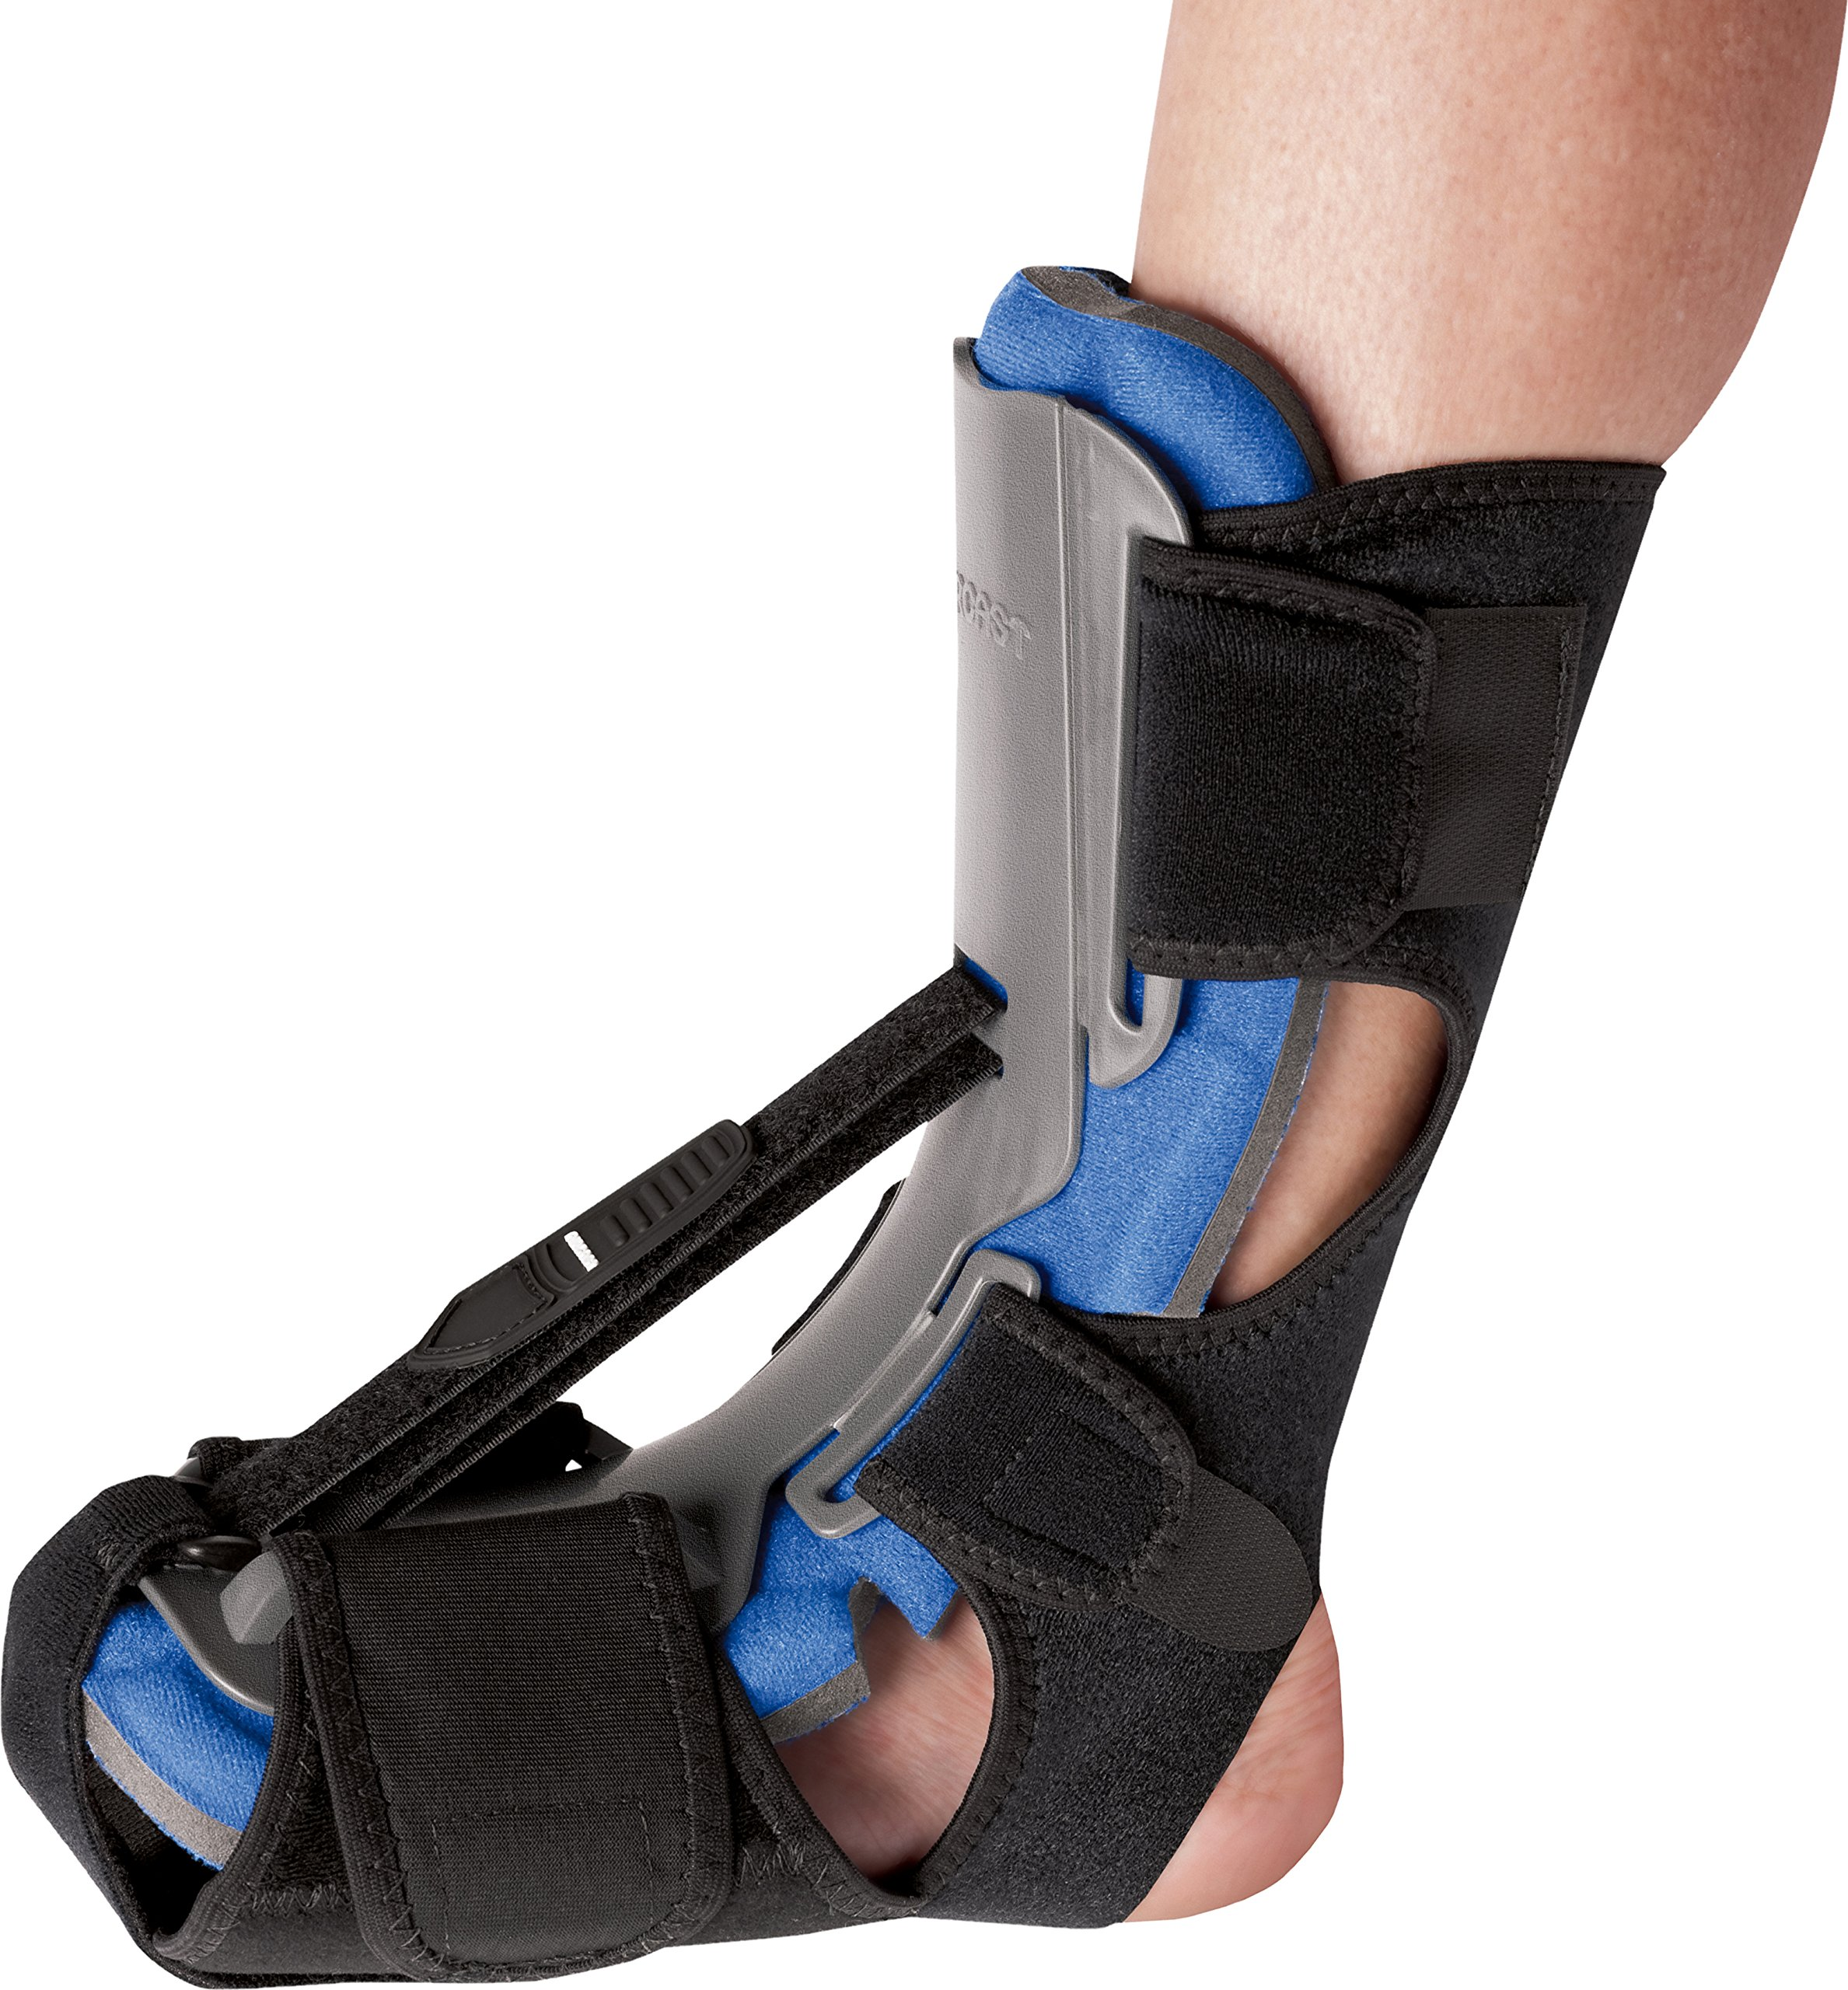 Aircast AirHeel Ankle Support Brace and Dorsal Night Splint (DNS) Care Kit, Medium by Aircast (Image #4)